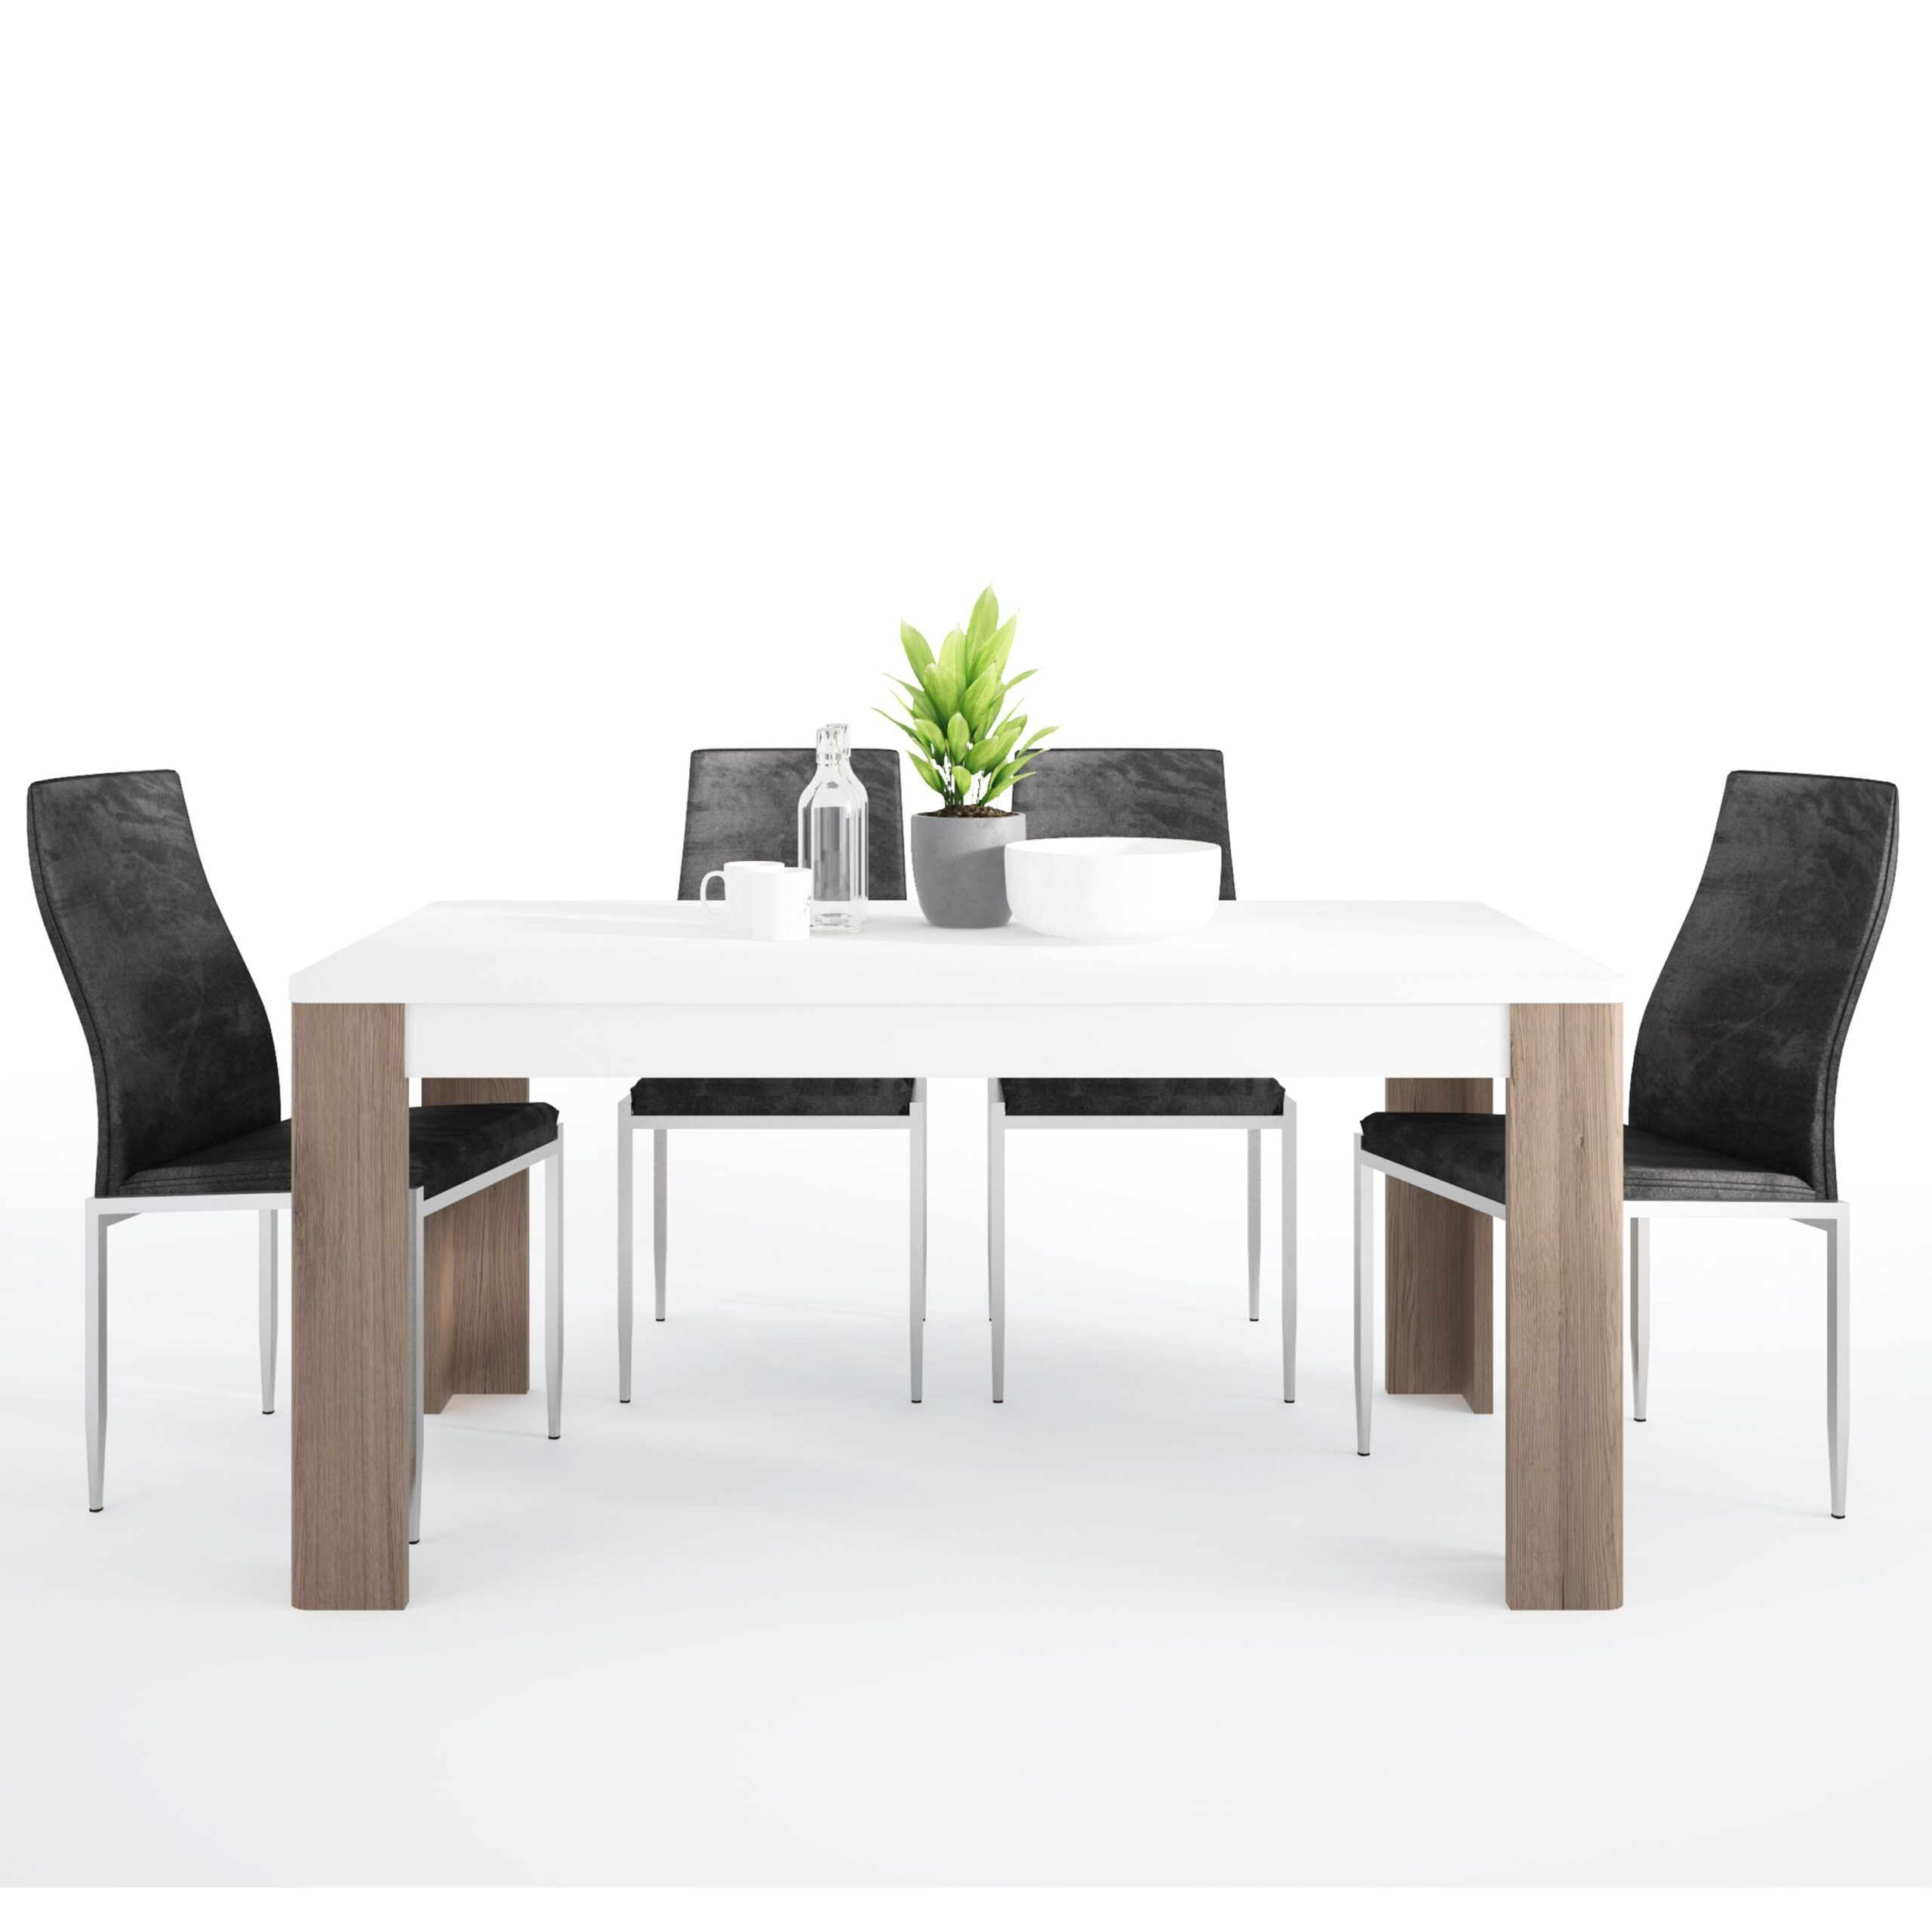 Canada Dining set package Canada 160 cm Dining Table + 4 Lillie High Back Chair Black.